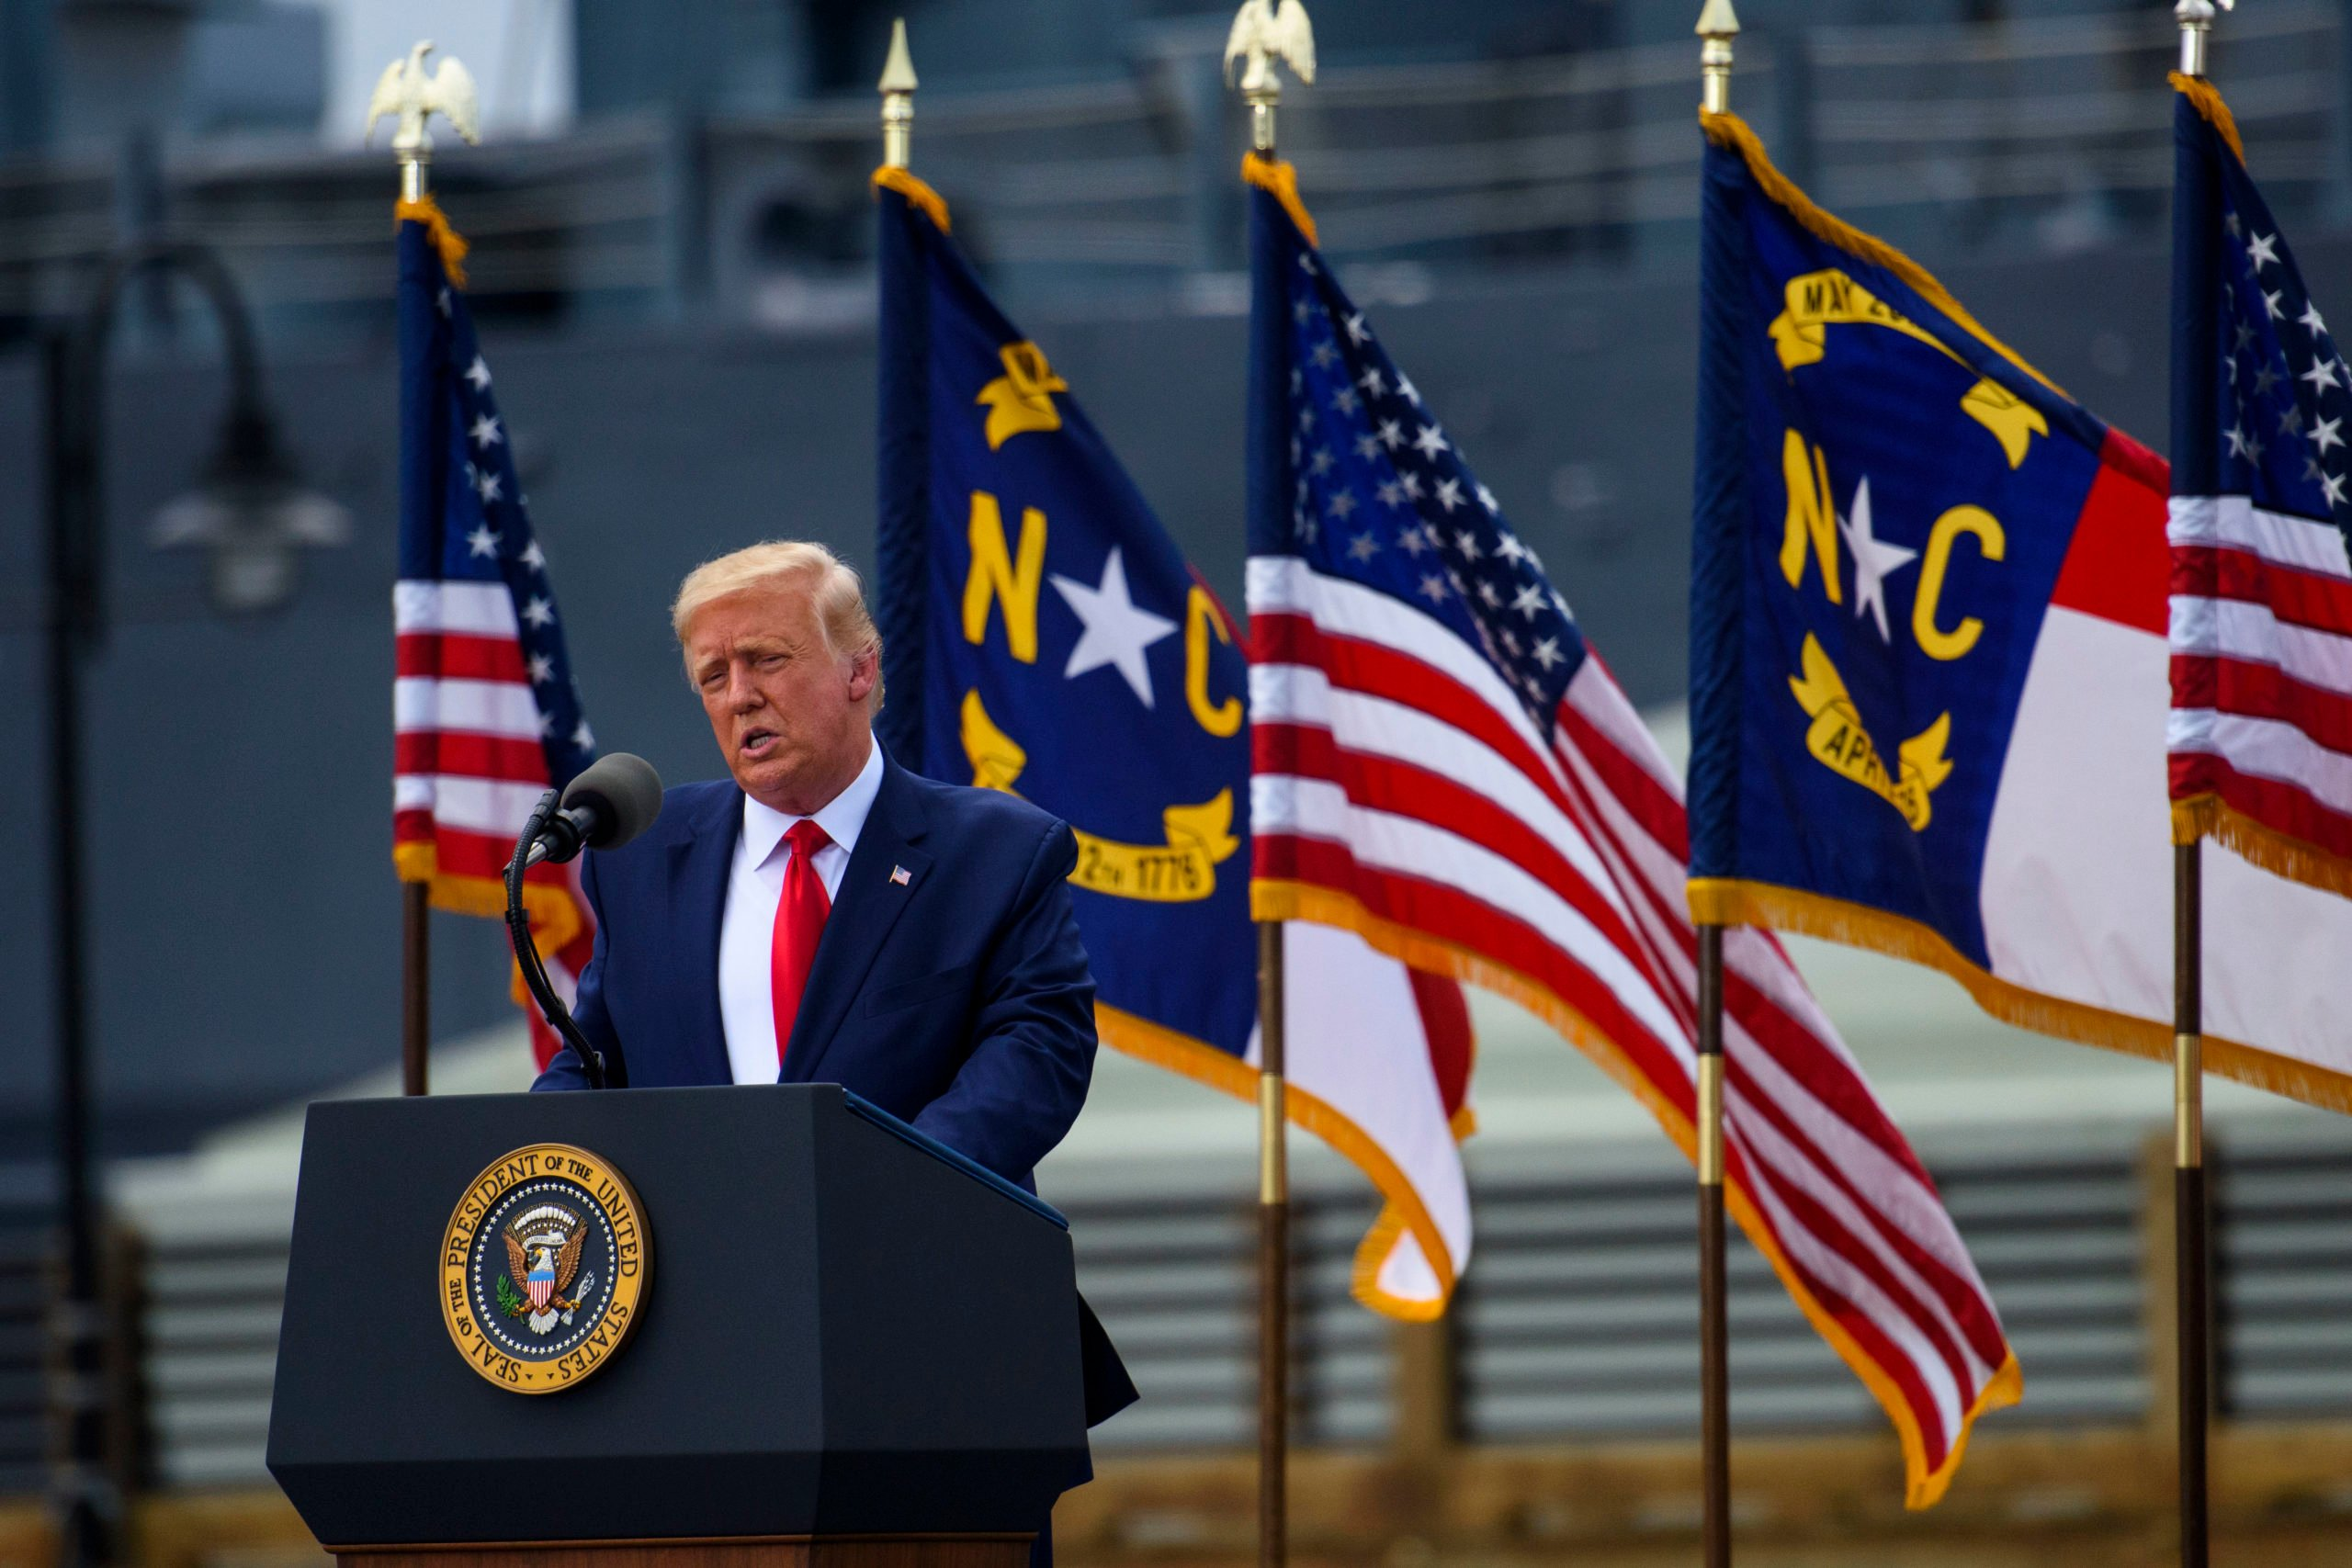 WILMINGTON, NC - SEPTEMBER 02: President Donald Trump speaks to a small crowd outside the USS North Carolina on September 2, 2020 in Wilmington, North Carolina. President Donald Trump visited the port city for a brief ceremony designating Wilmington as the nation's first WWII Heritage City. The title is in honor of the area's efforts during WWII. (Photo by Melissa Sue Gerrits/Getty Images)